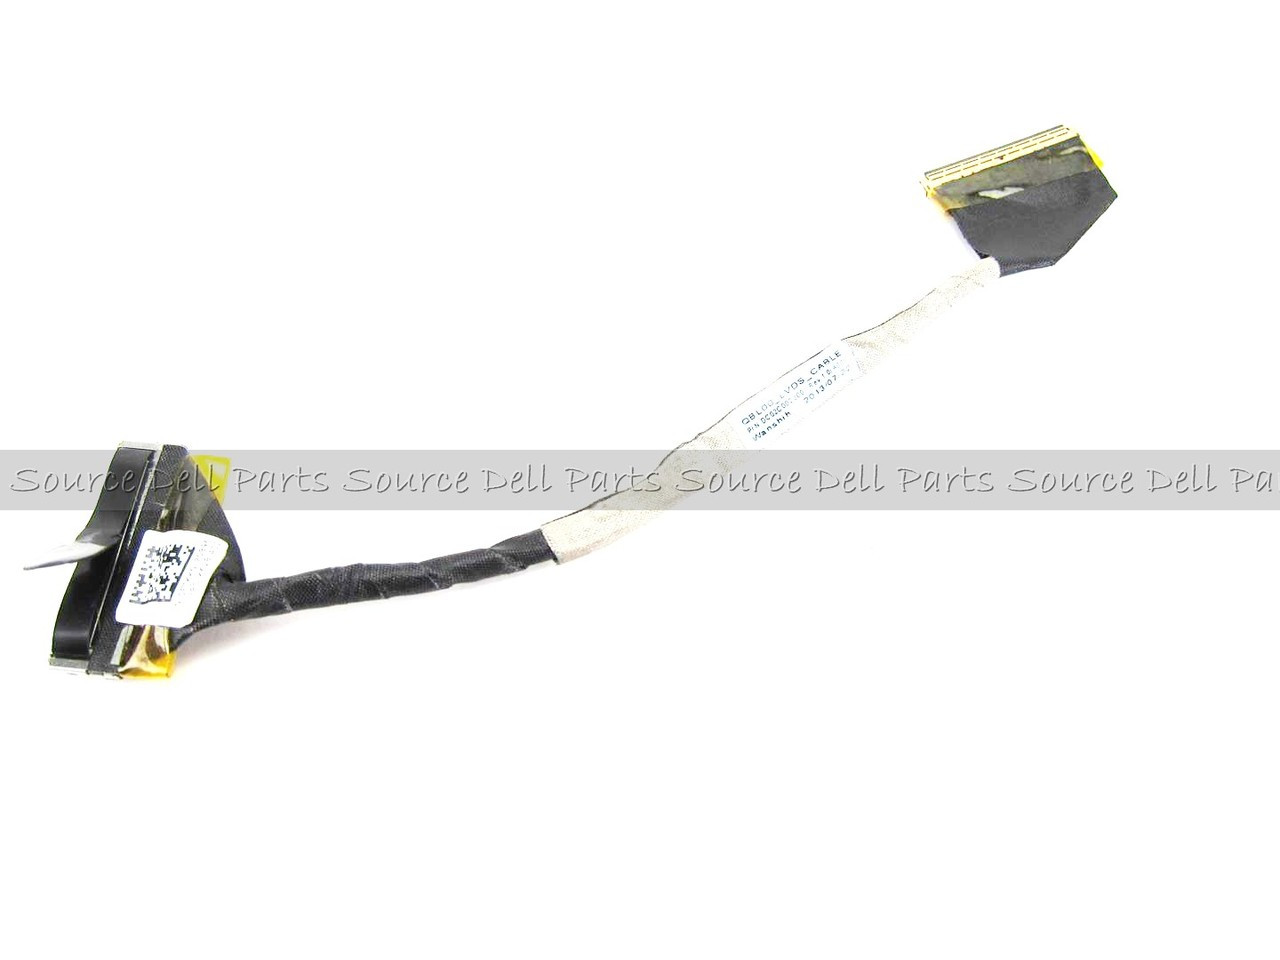 """Dell XPS 15 (L521x) 15.6"""" LCD Video Screen Cable - FTKKN"""